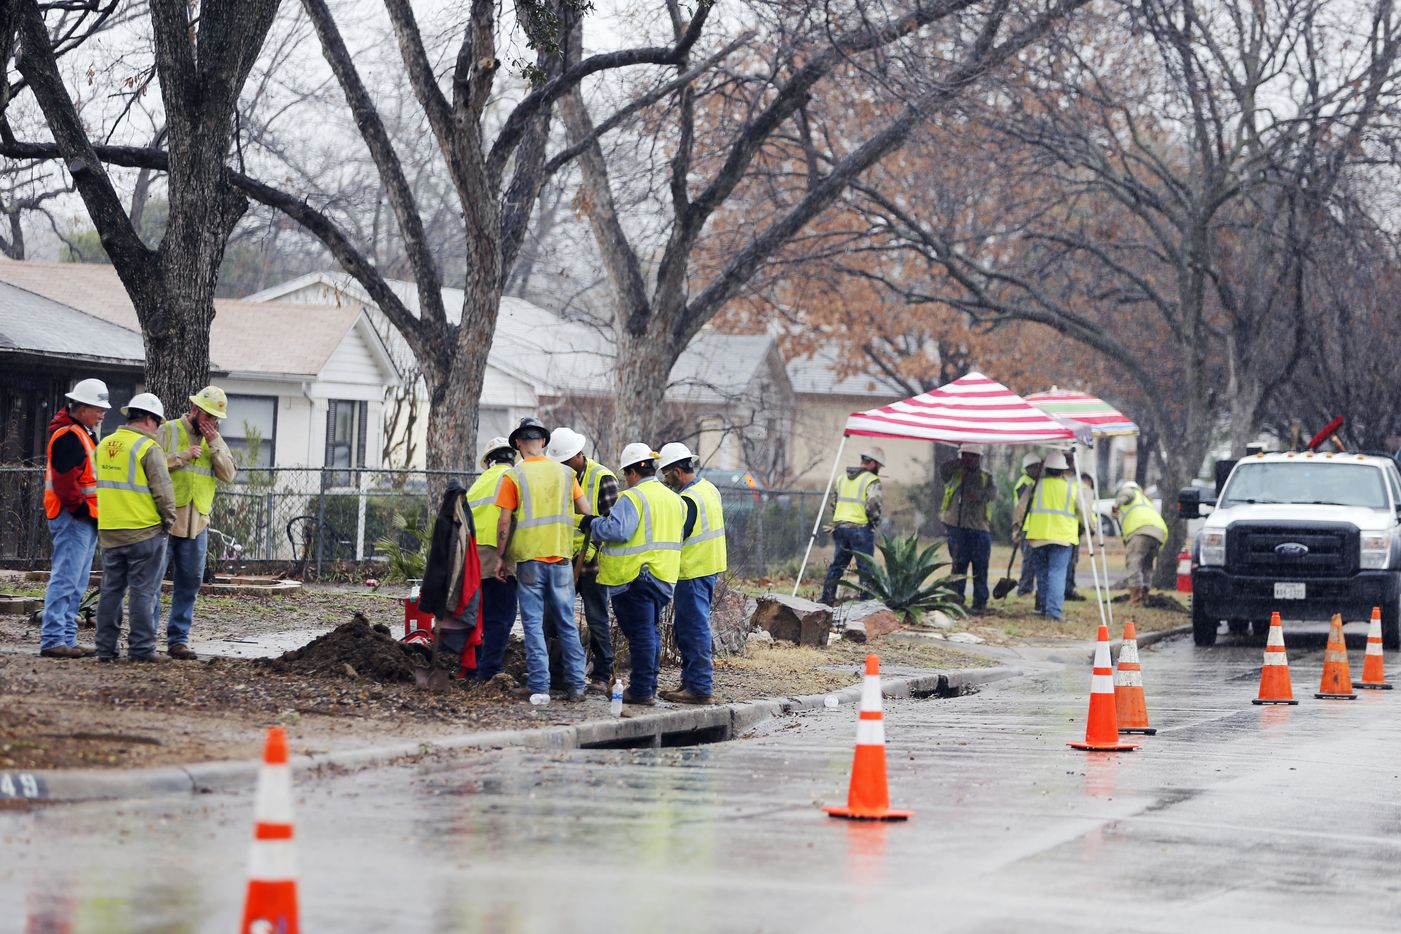 Construction crews work on gas lines near the intersection of Bowman Blvd and Chireno Street in Dallas on Wednesday, February 28, 2018. A gas leak forced the evacuation of a northwest Dallas fire station Tuesday evening not far from where a house exploded last week. (Vernon Bryant/The Dallas Morning News)